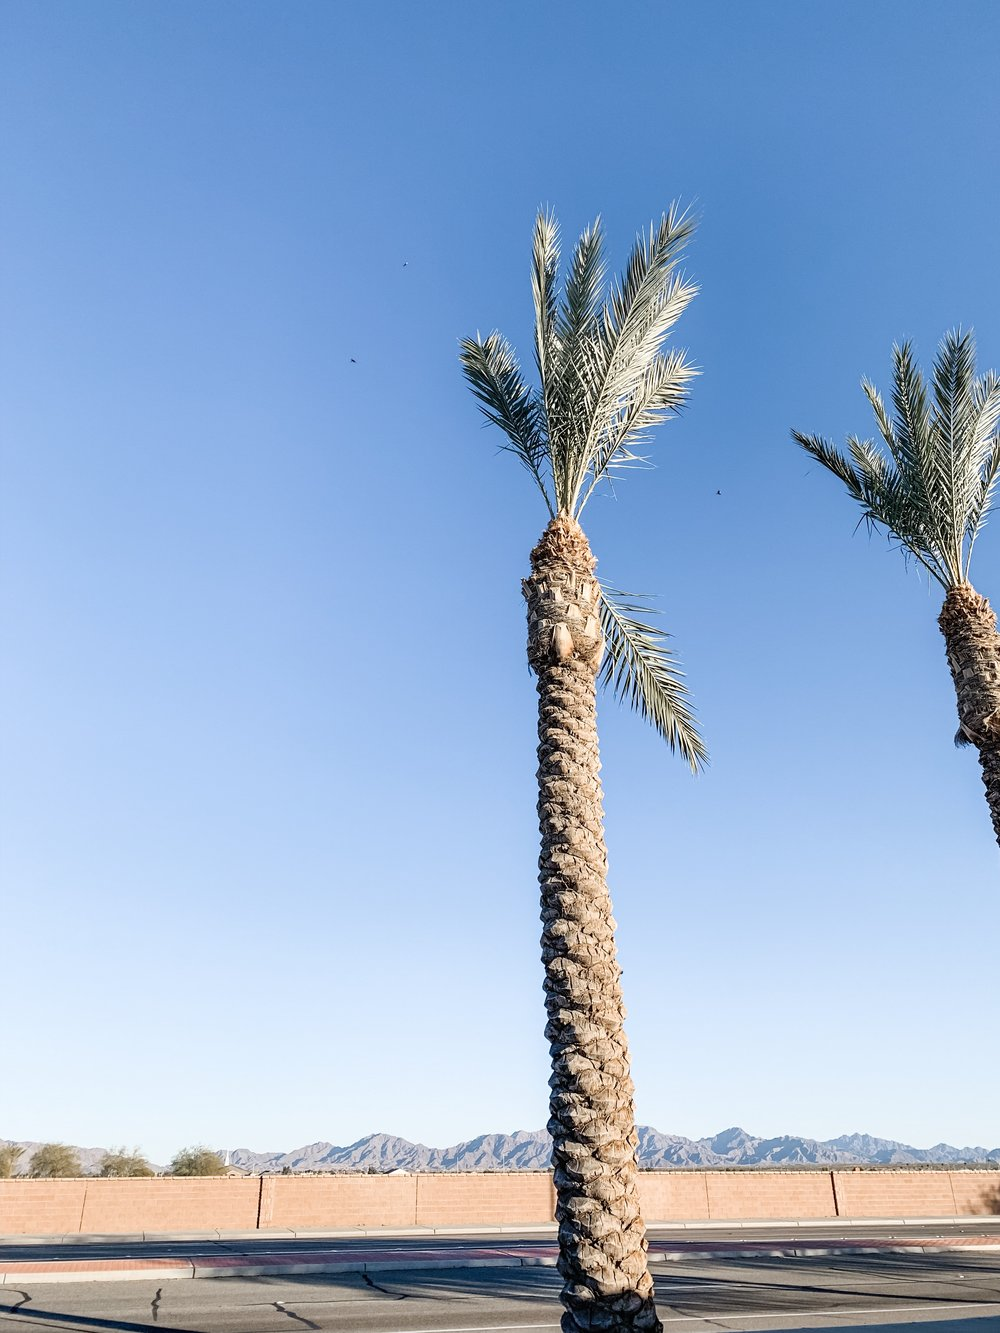 Love those beautiful palm trees in Arizona.